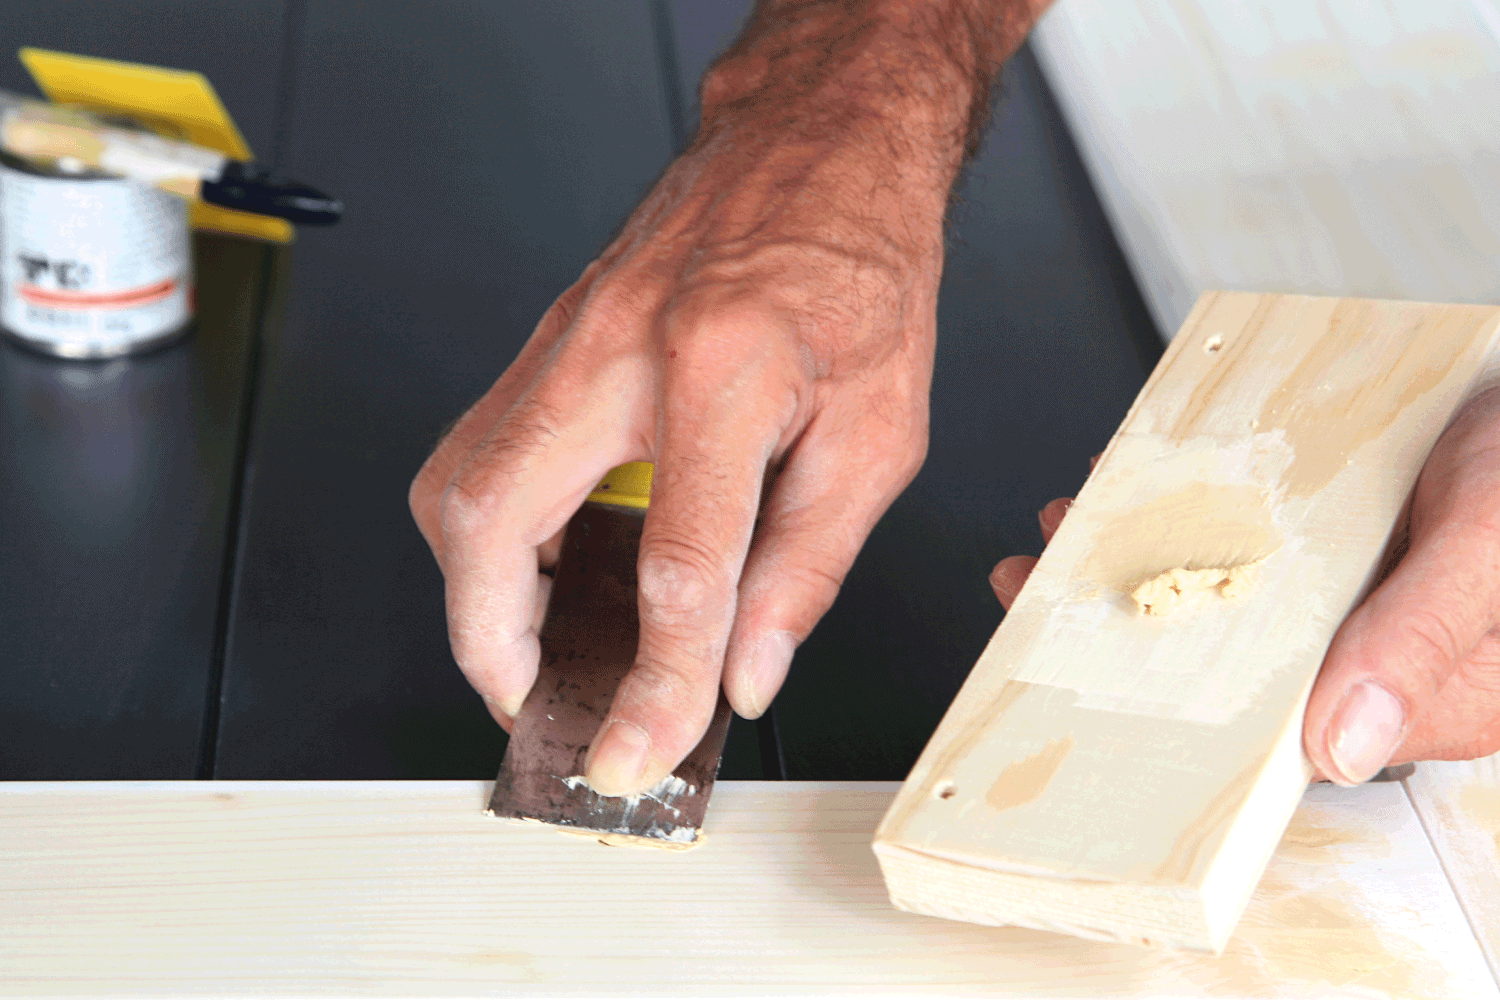 Preparation woodwork. Close-up details Putty knife in man's hand. DIY worker applying filler to the wood. Removing holes from a wood surface. Application of putty